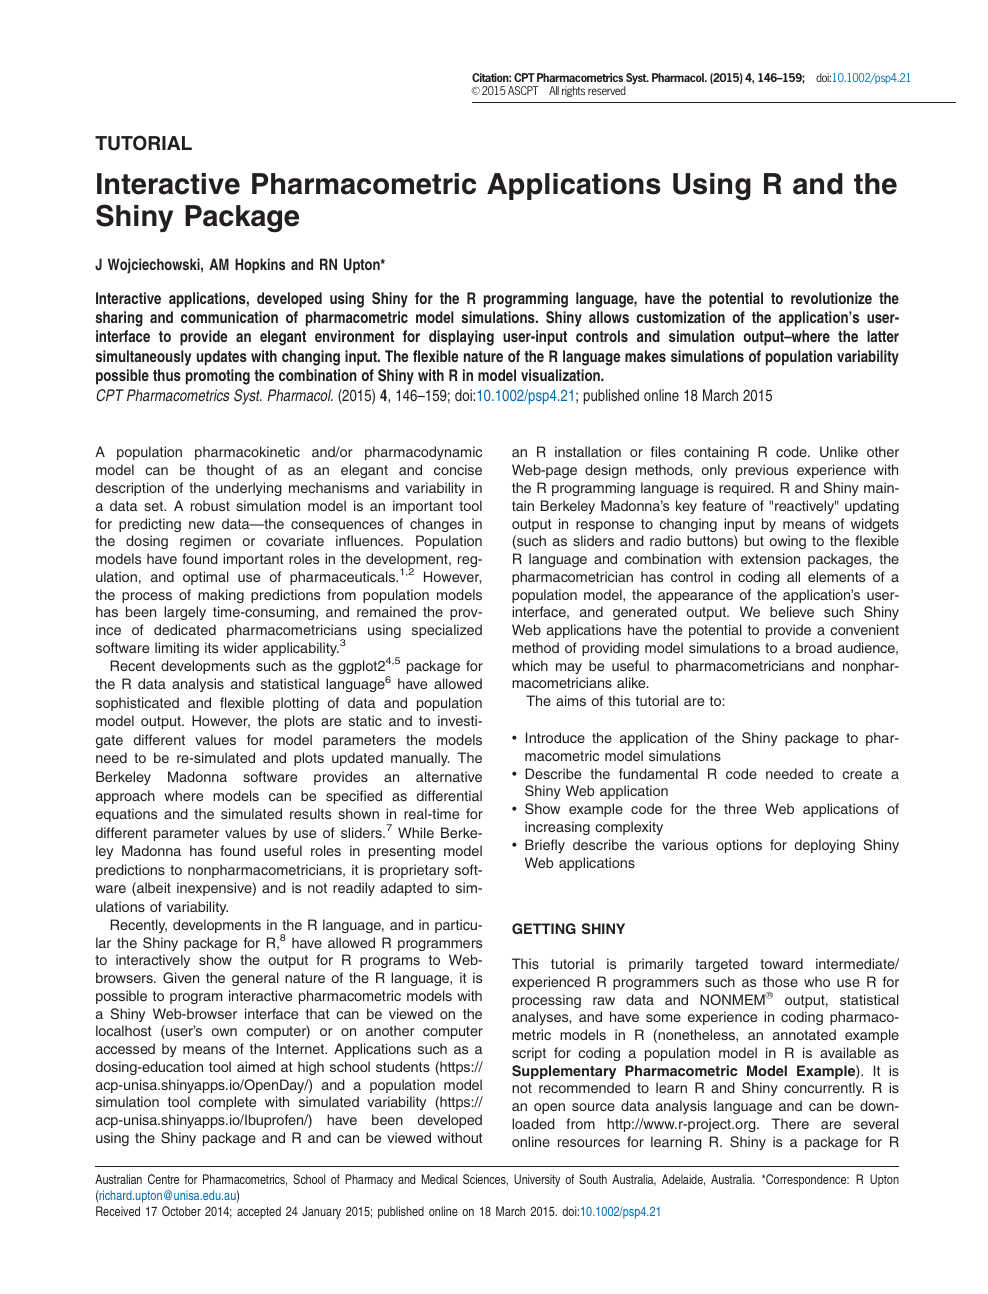 Interactive Pharmacometric Applications Using R and the Shiny